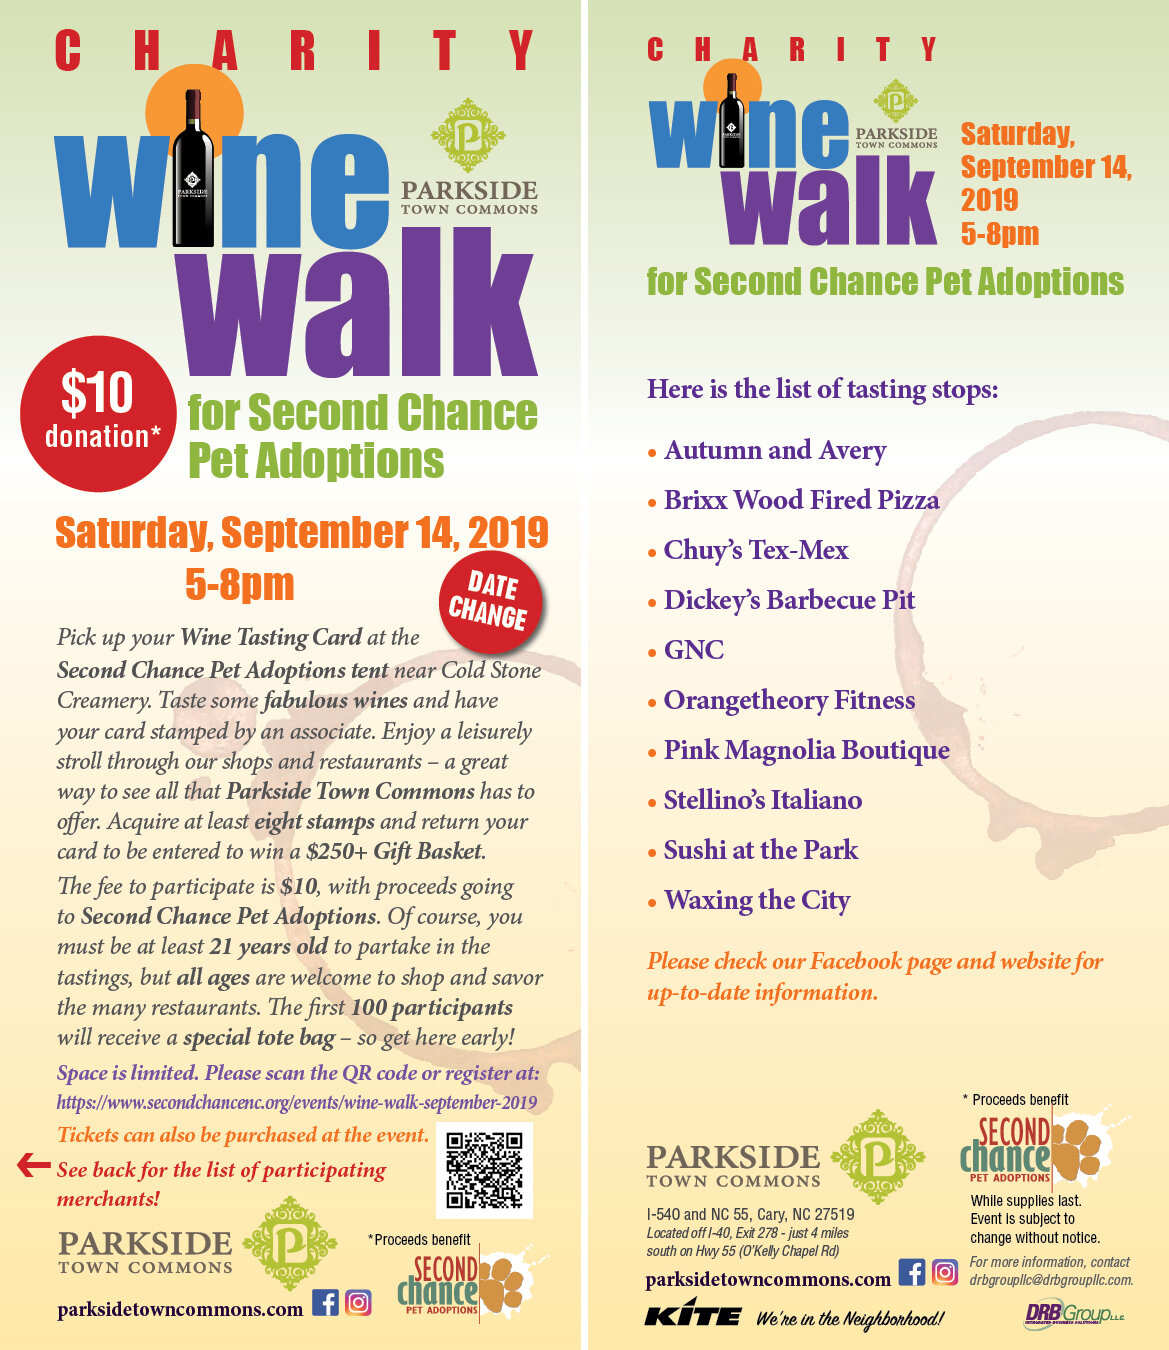 parkside_winewalk_091419.jpg